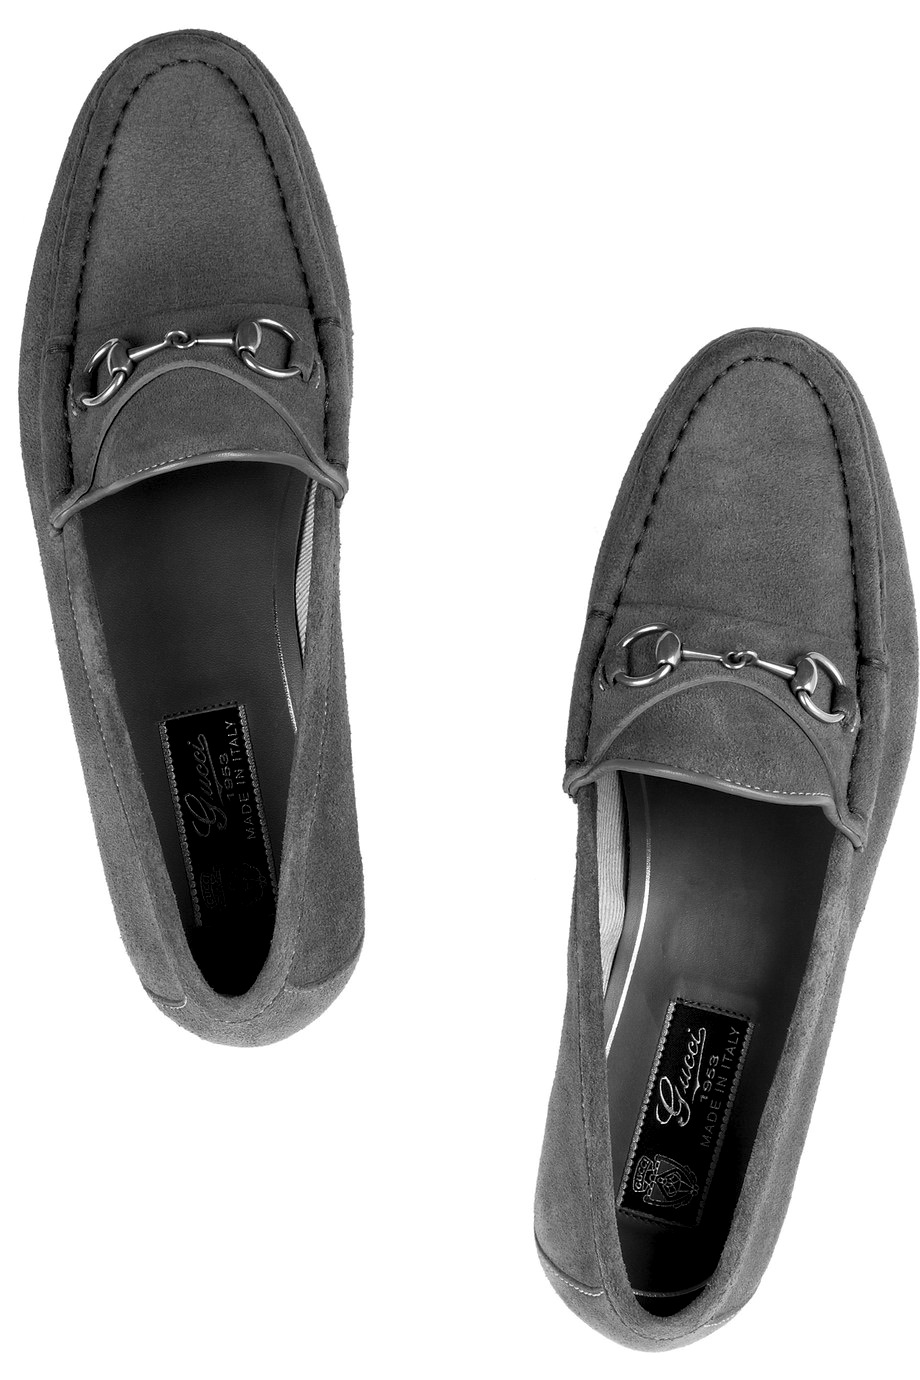 Gucci loafers 60th anniversary 1953 loafer